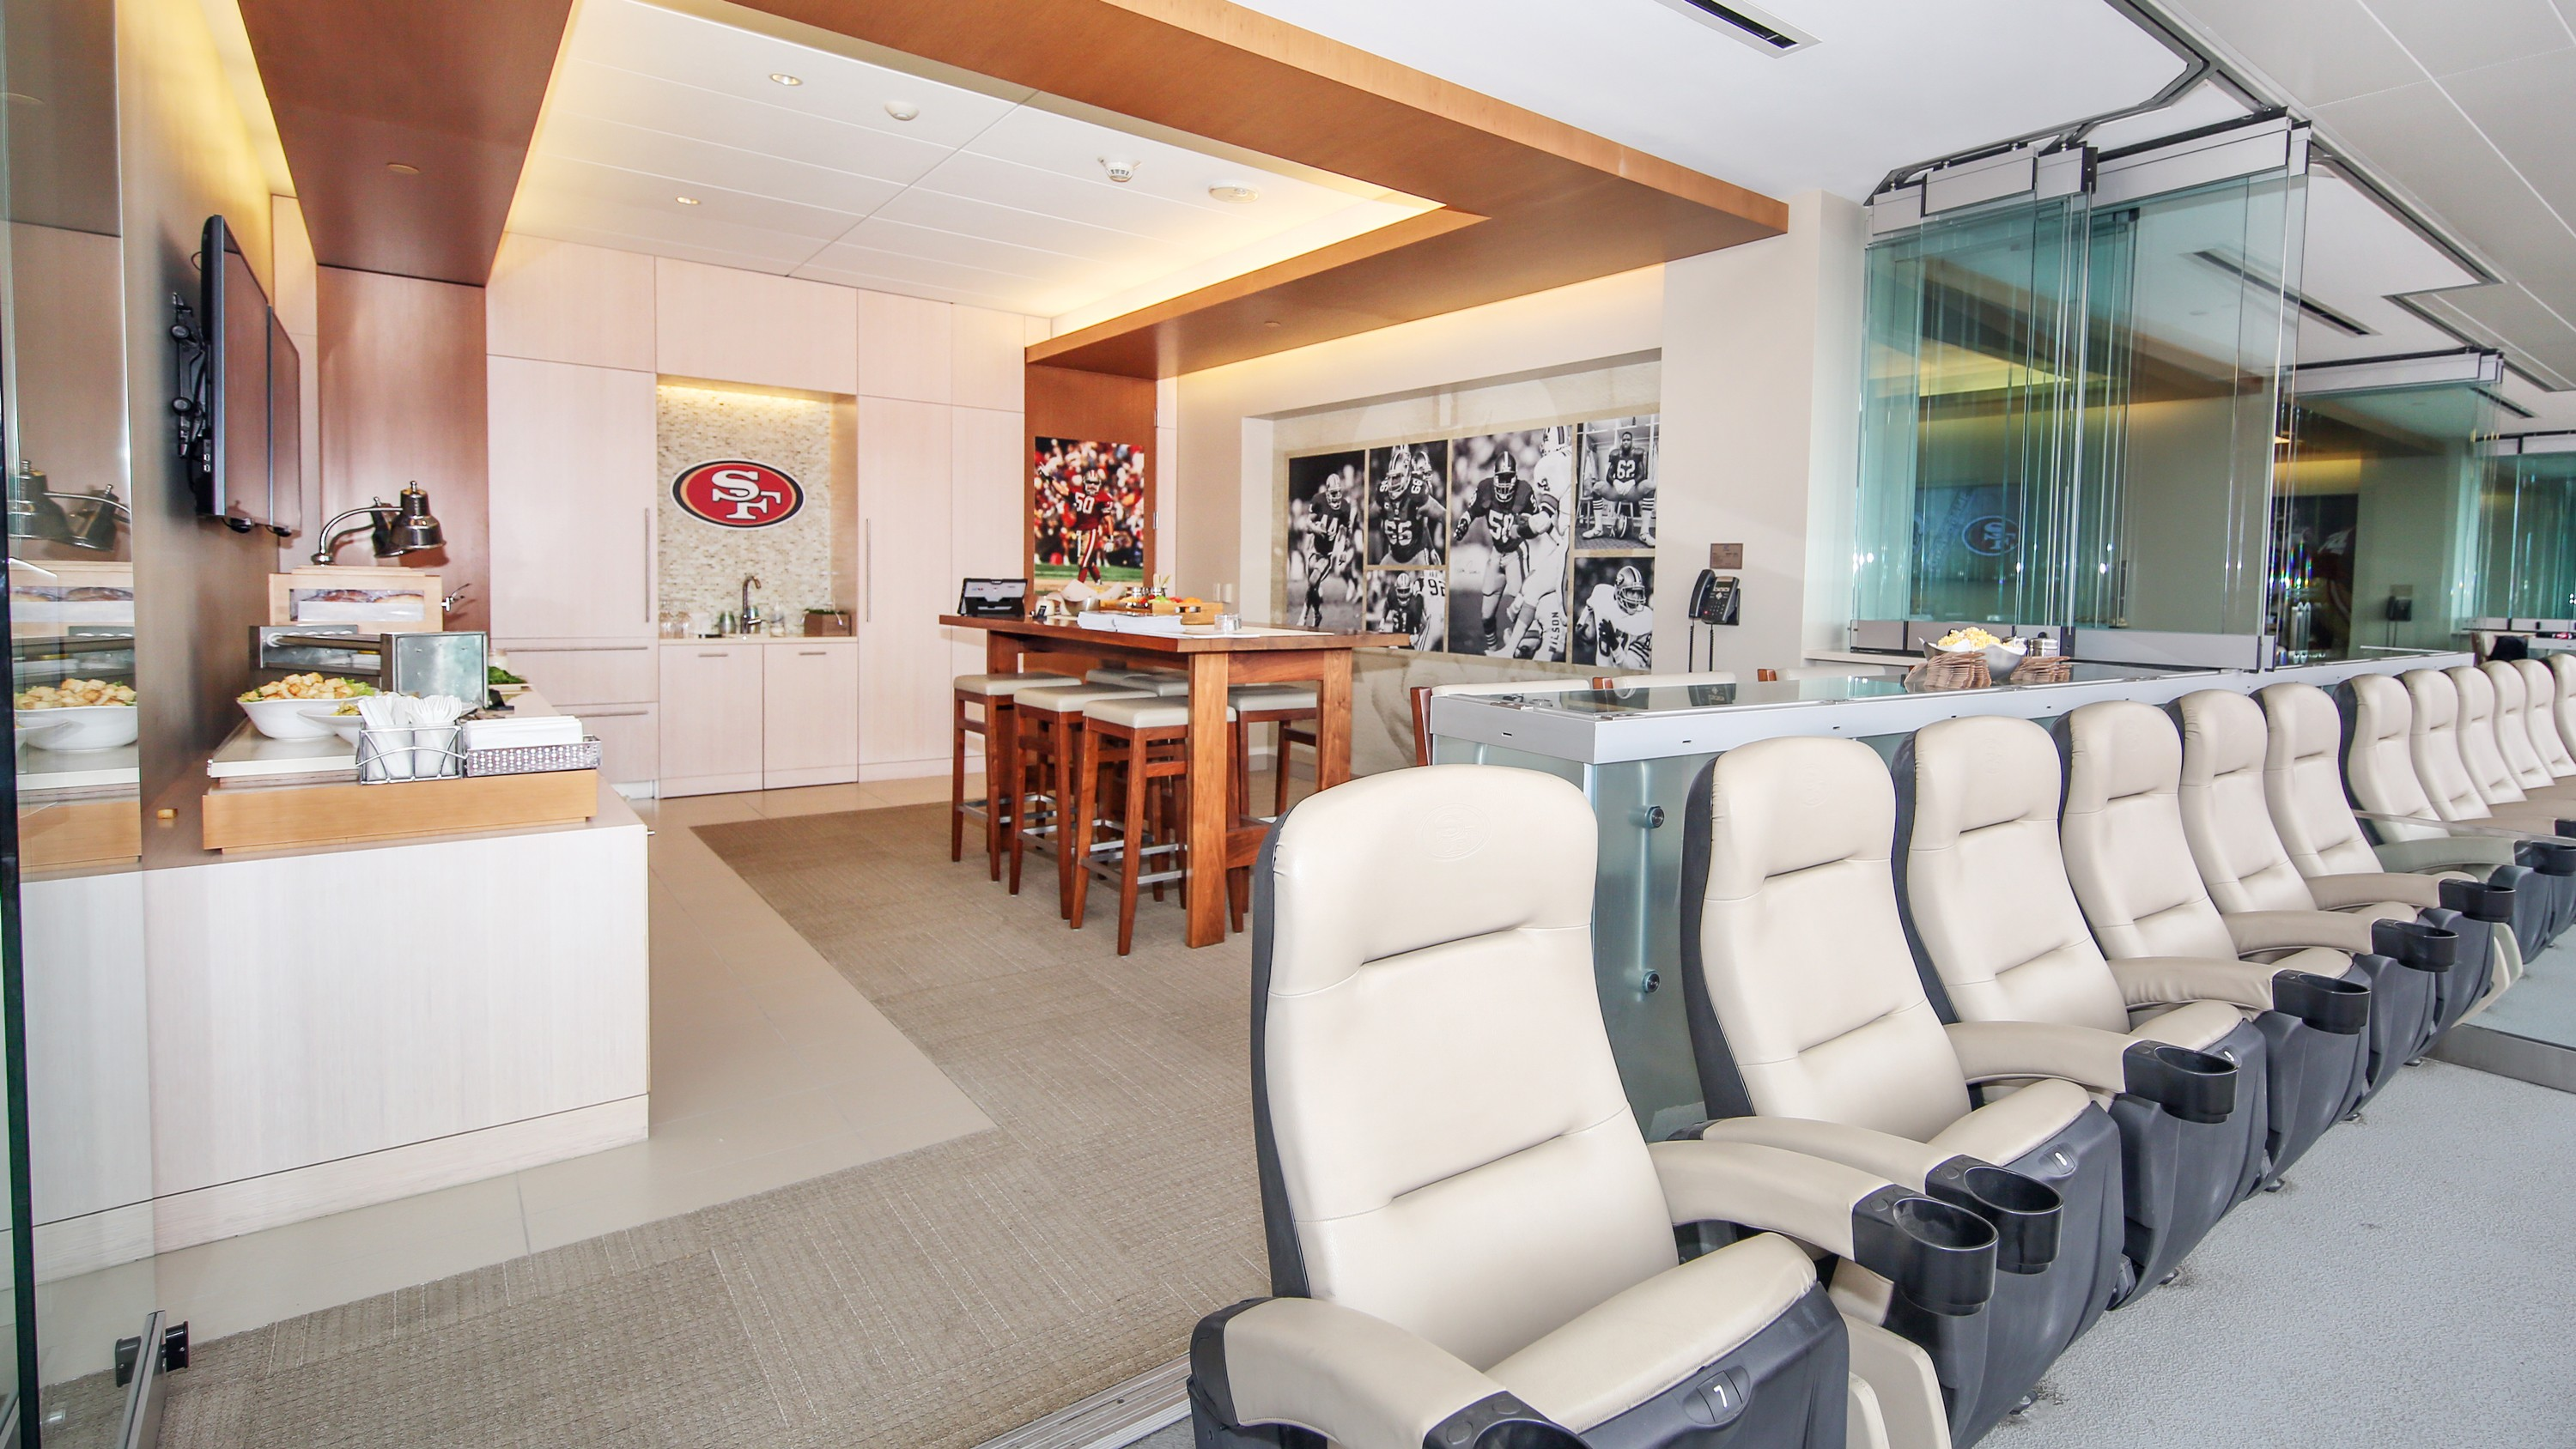 Suite Tickets and Parking